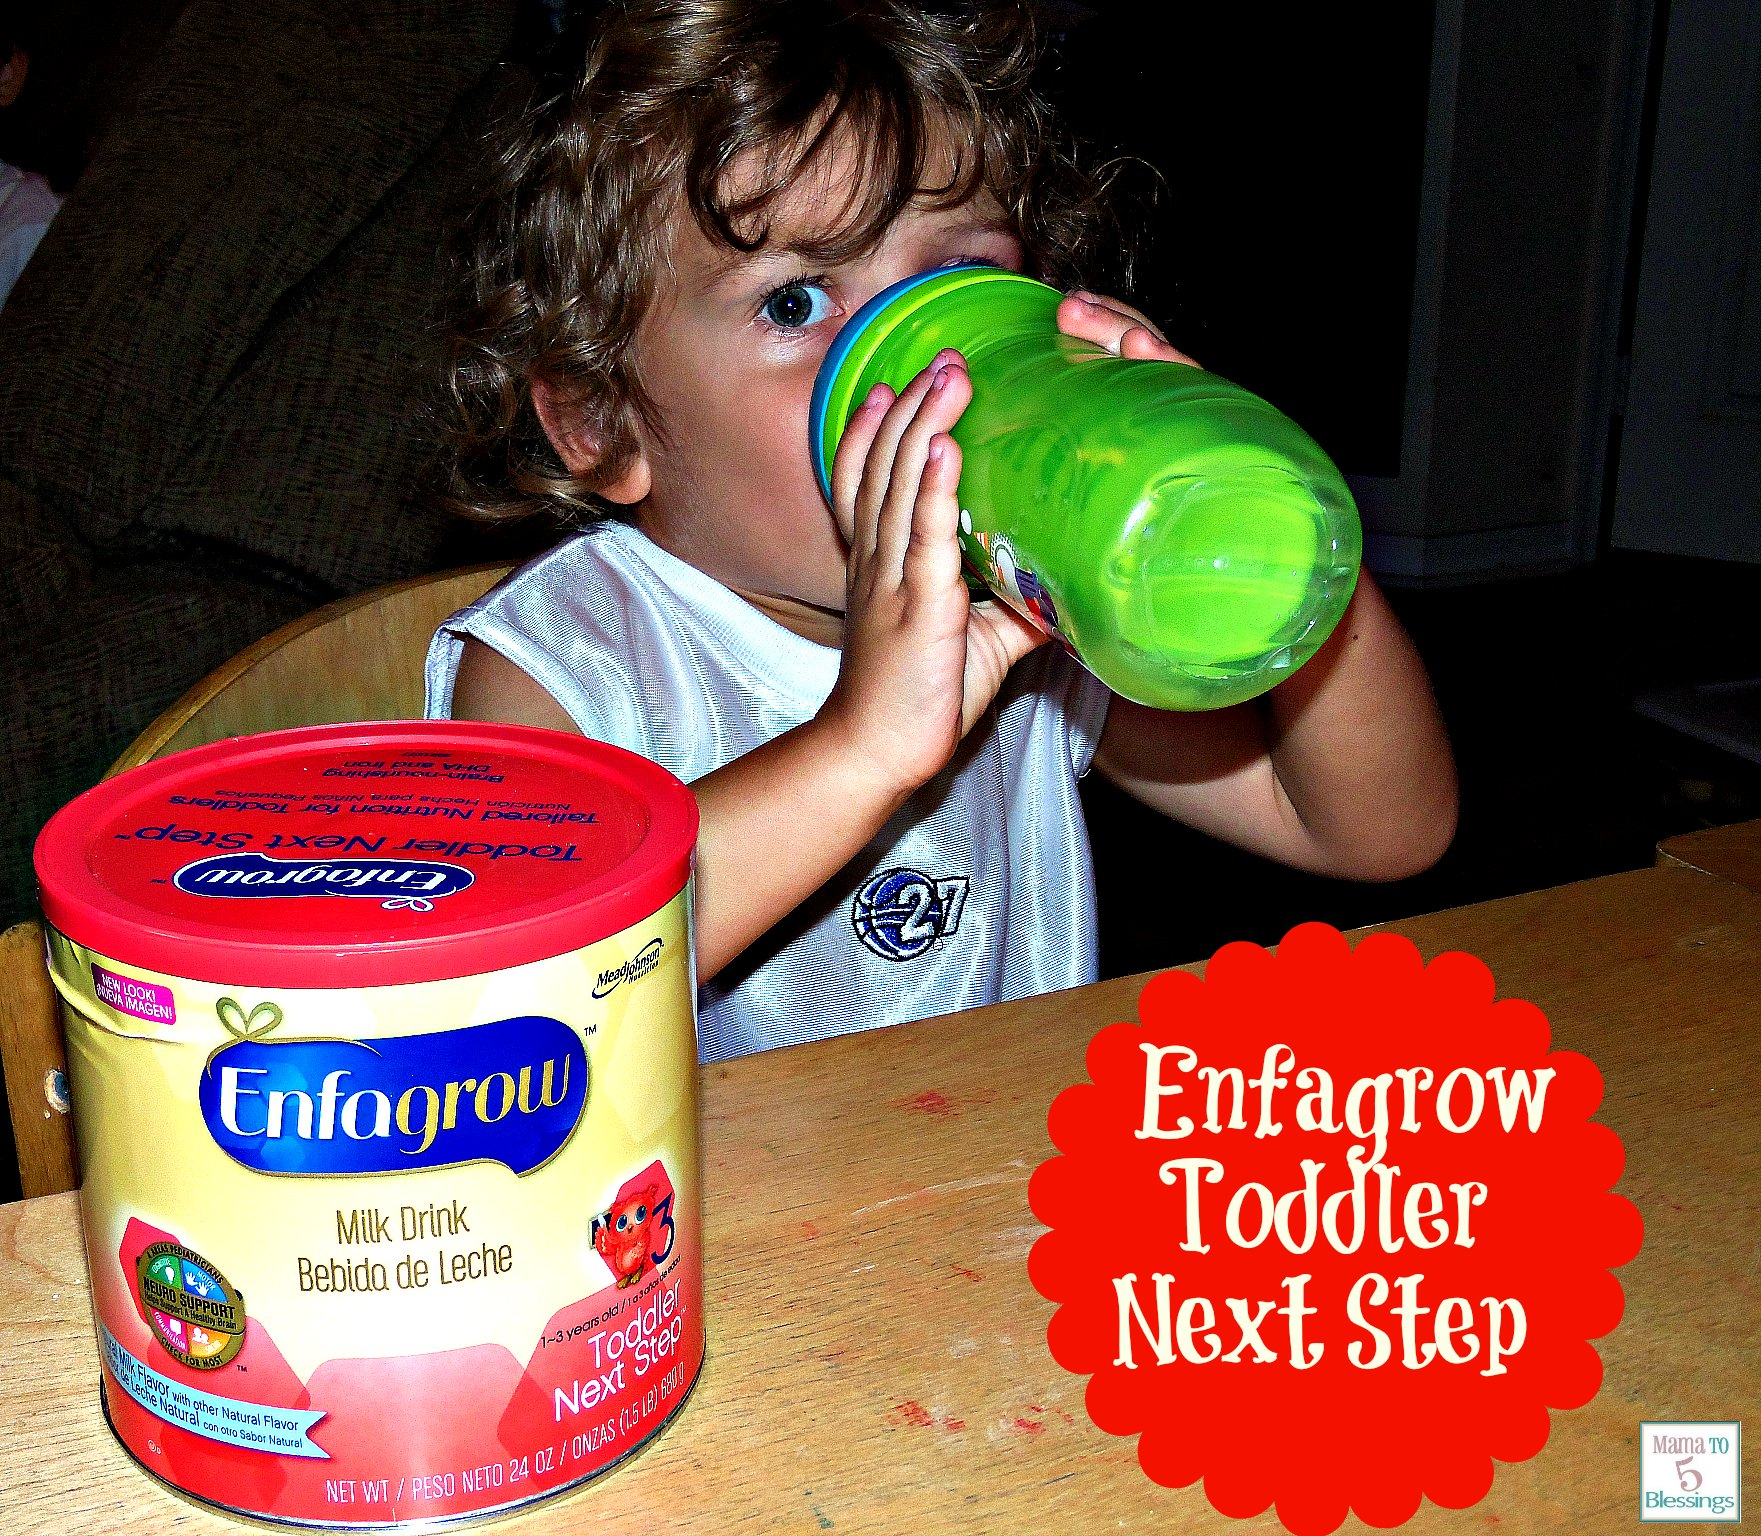 Enfagrow Toddler Next Step Luke